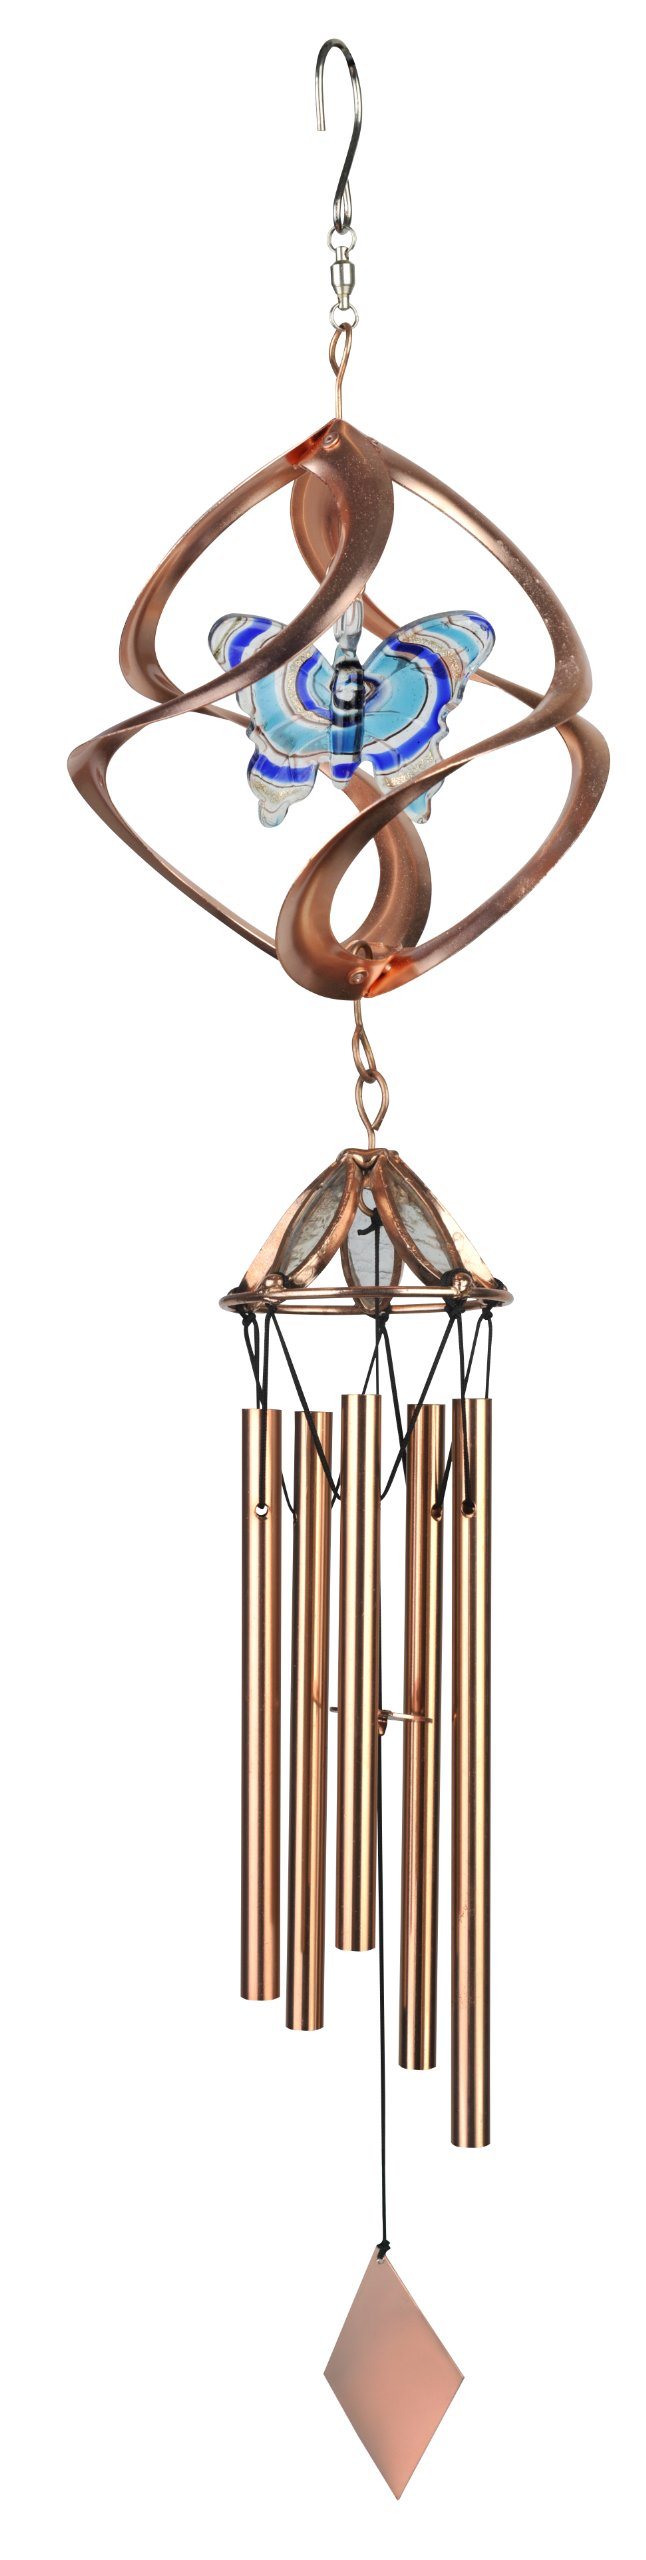 Red Carpet Studios Cosmix Copper Wind Spinner and Chime, Butterfly by Red Carpet